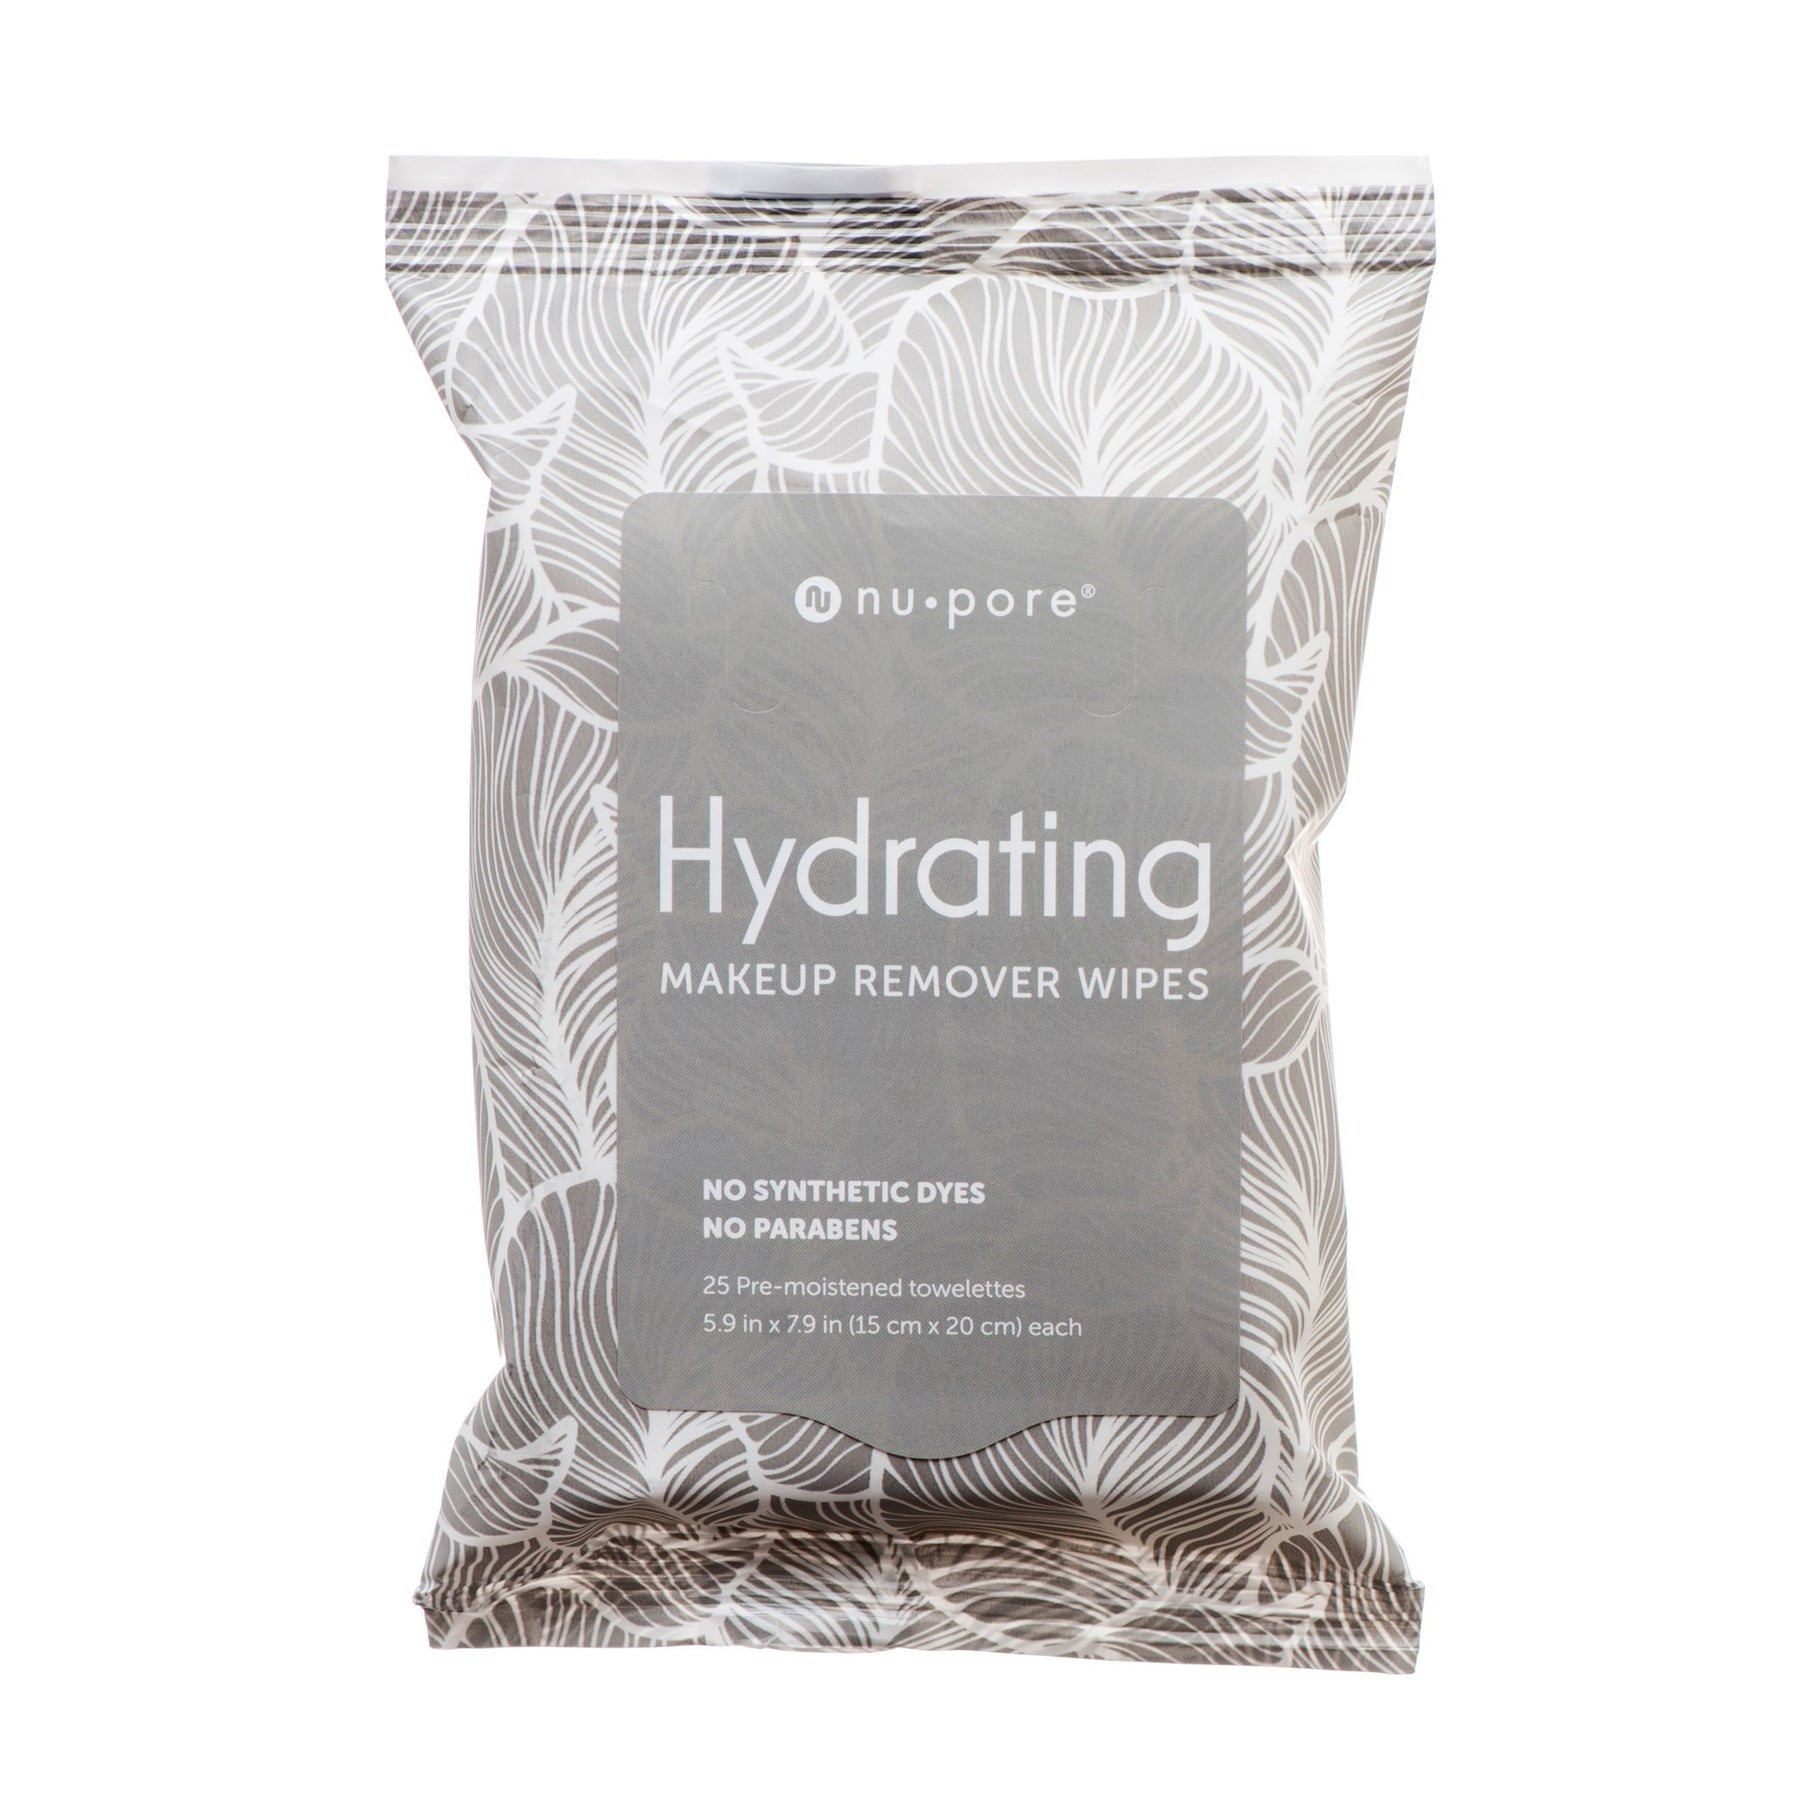 Nu Pore Hydrating Makeup Remover Wipes